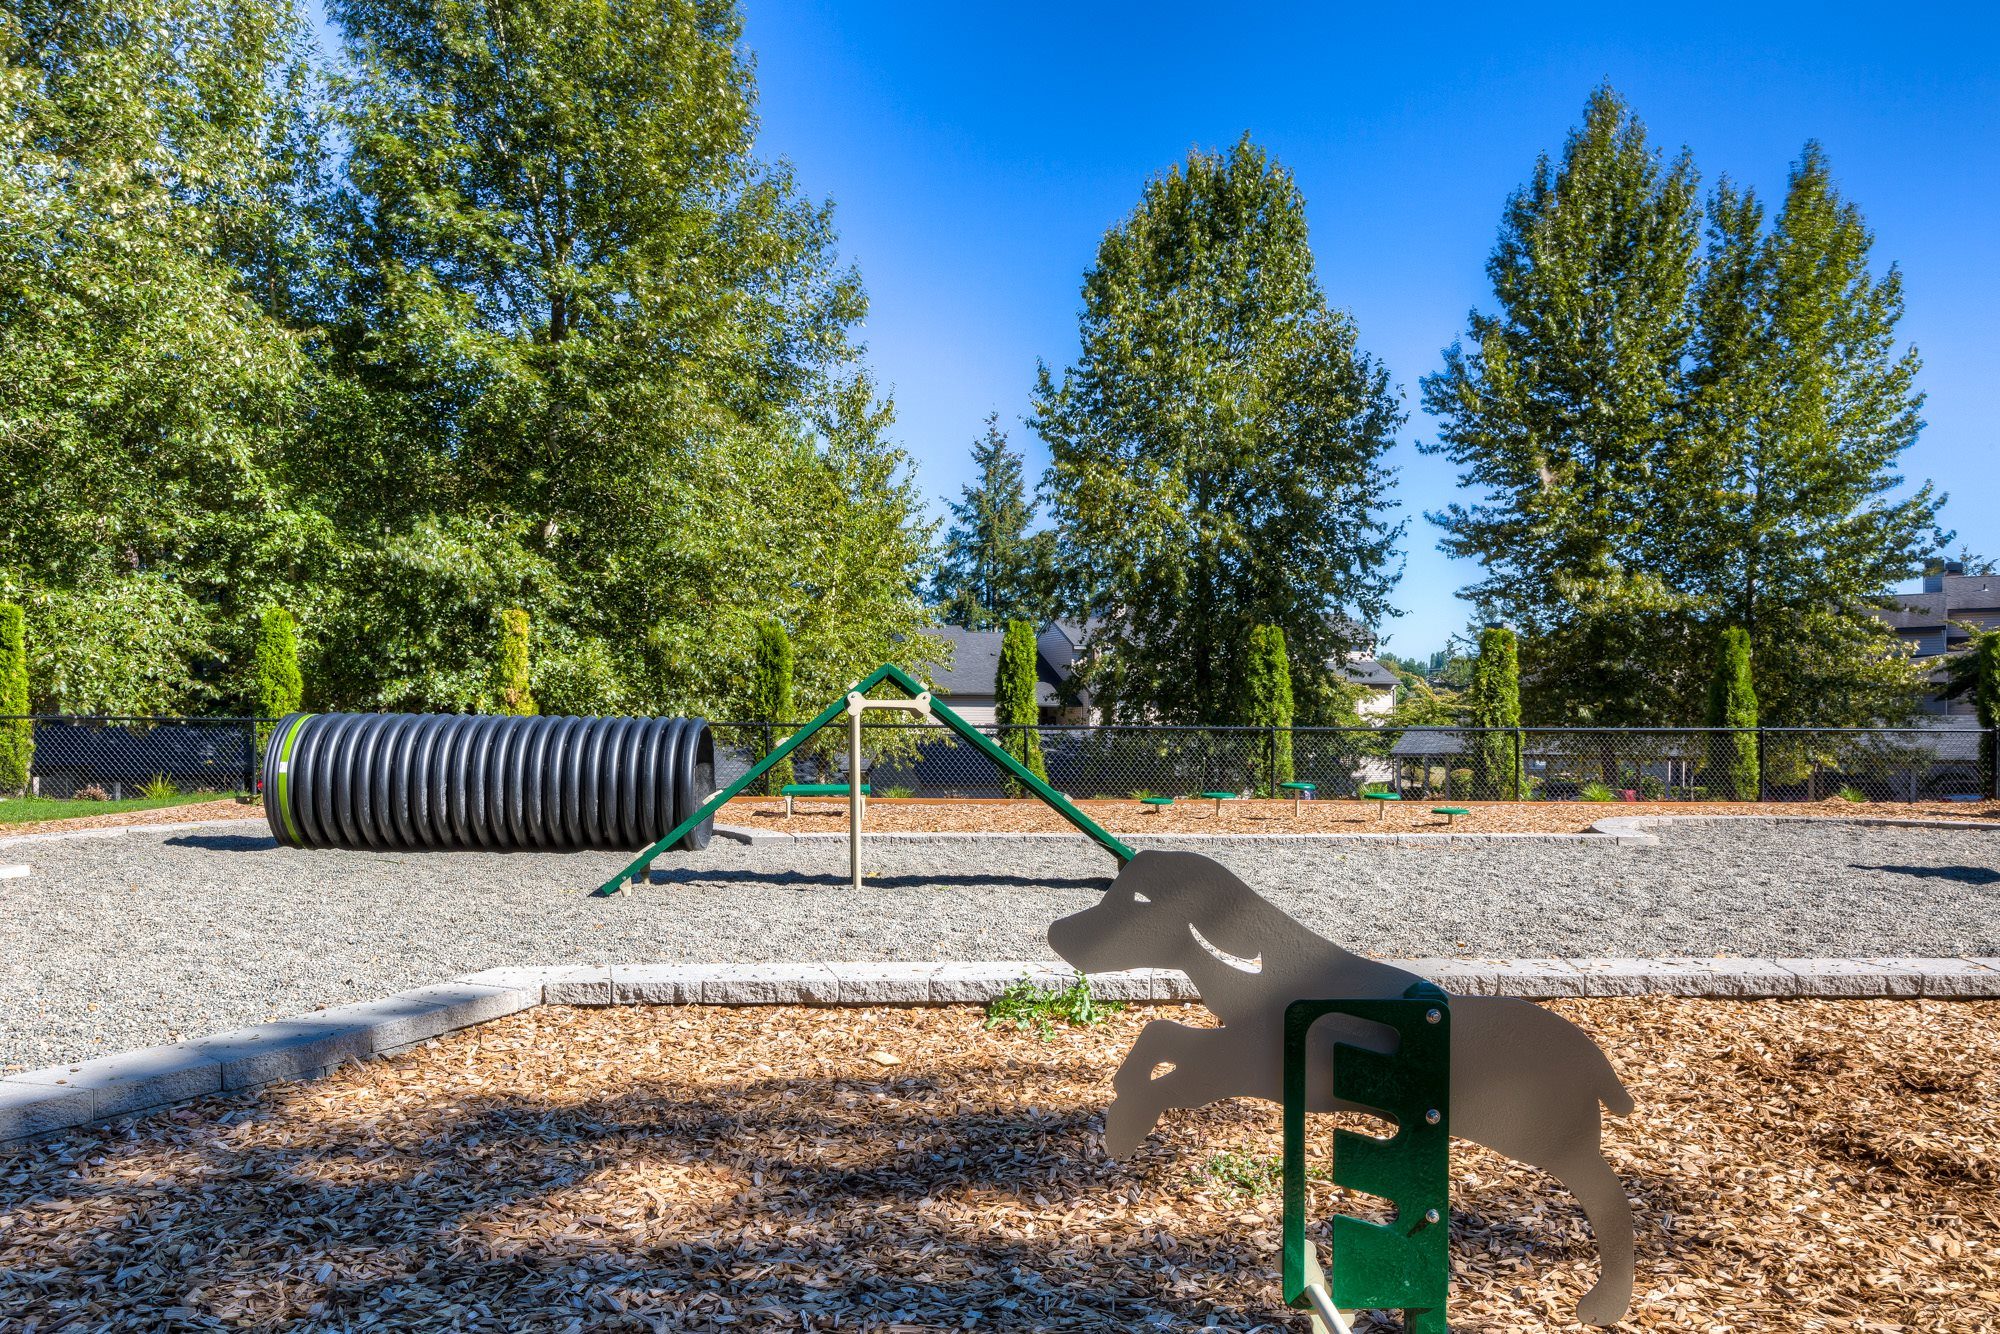 Playground at The Fairways Apartments, Tacoma, WA,98422